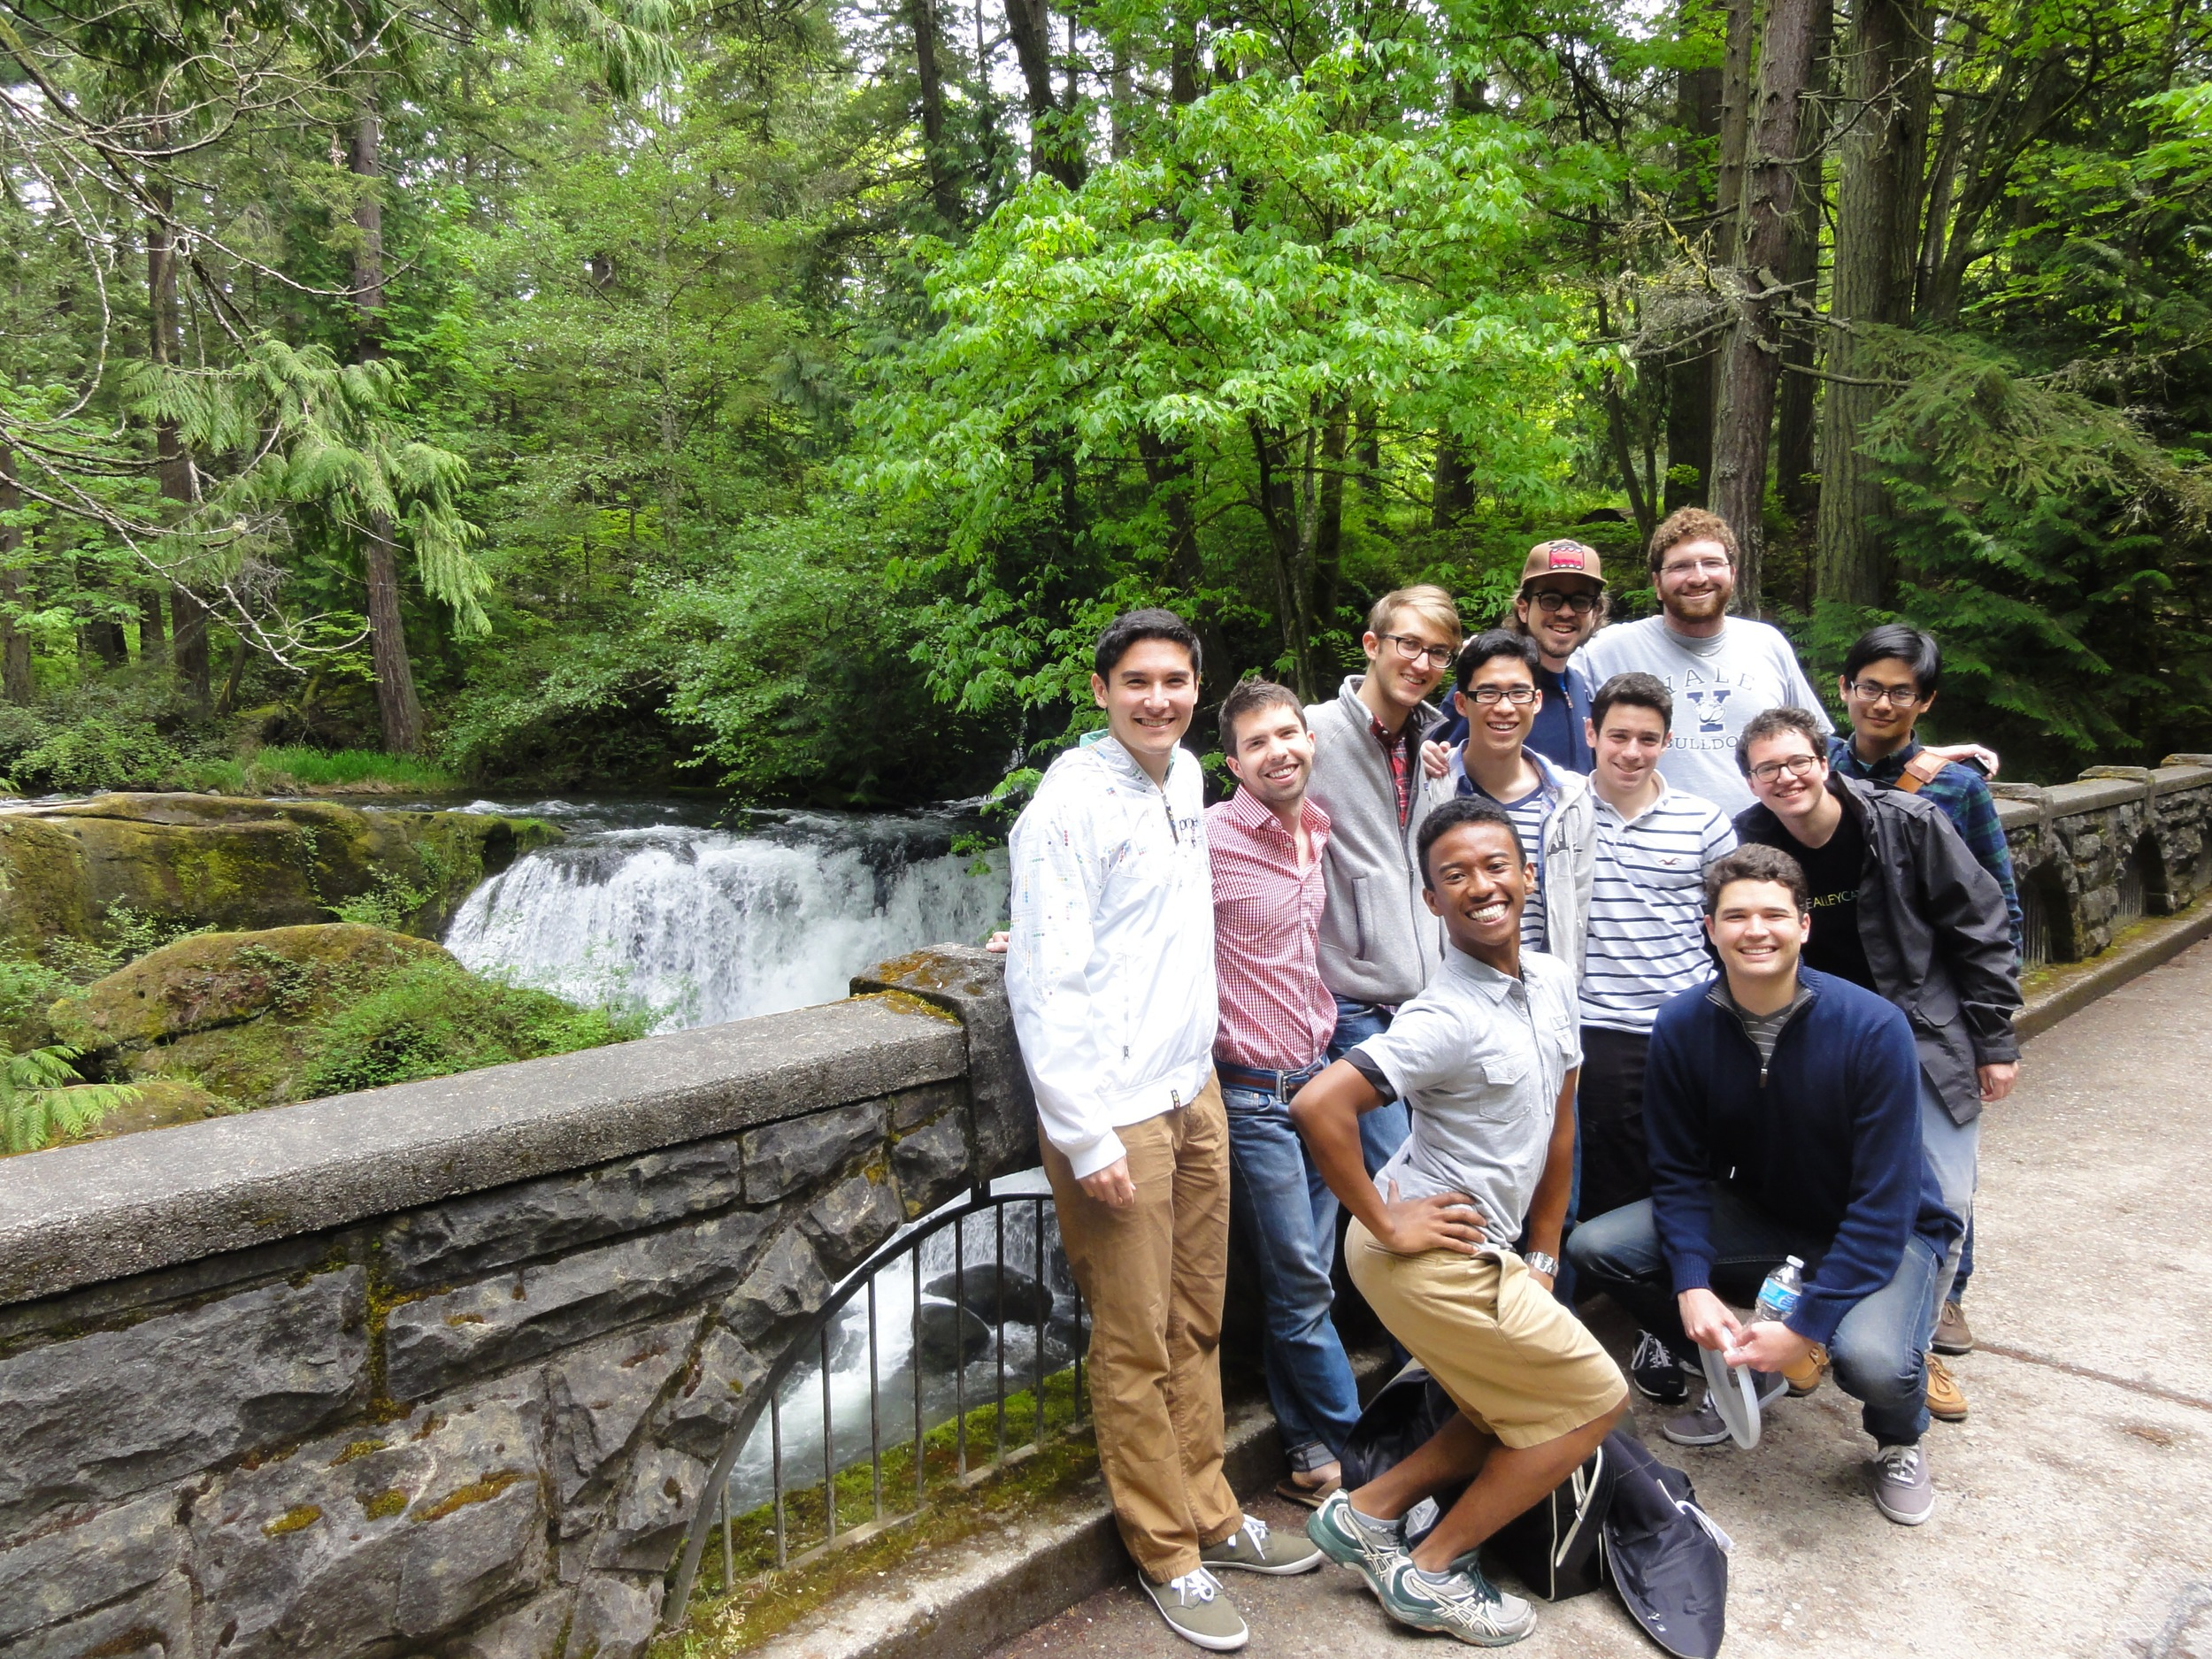 The Alley Cats visit Whatcom Falls in Bellingham, Washington